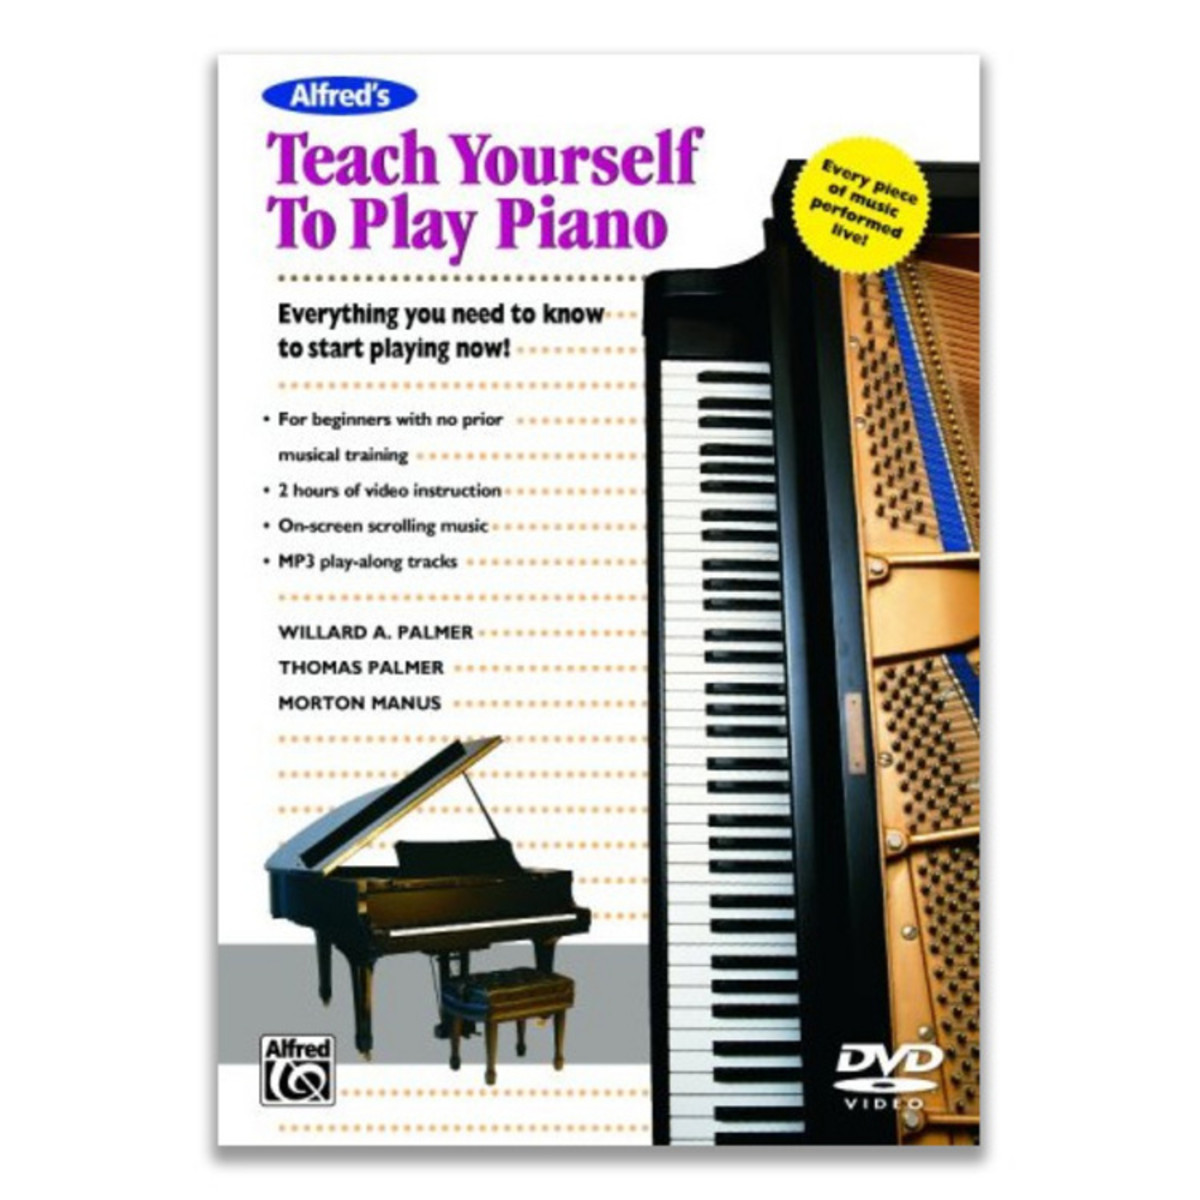 Image of Teach Yourself to Play Piano DVD